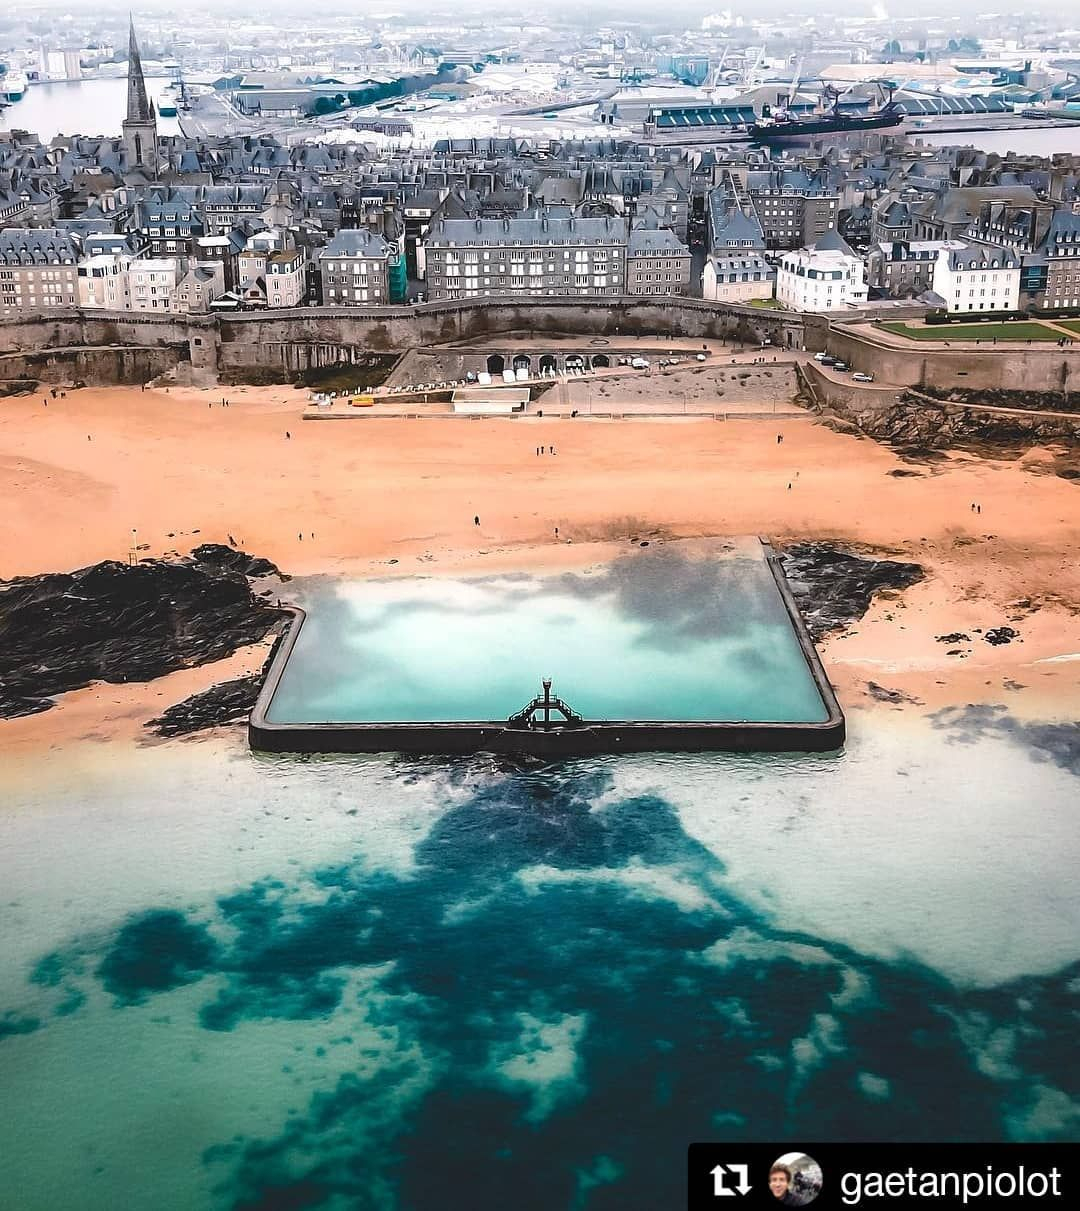 Pin By Alizé Mccolm On Bretagne In 2020 | Brittany France ... tout Piscine St Malo